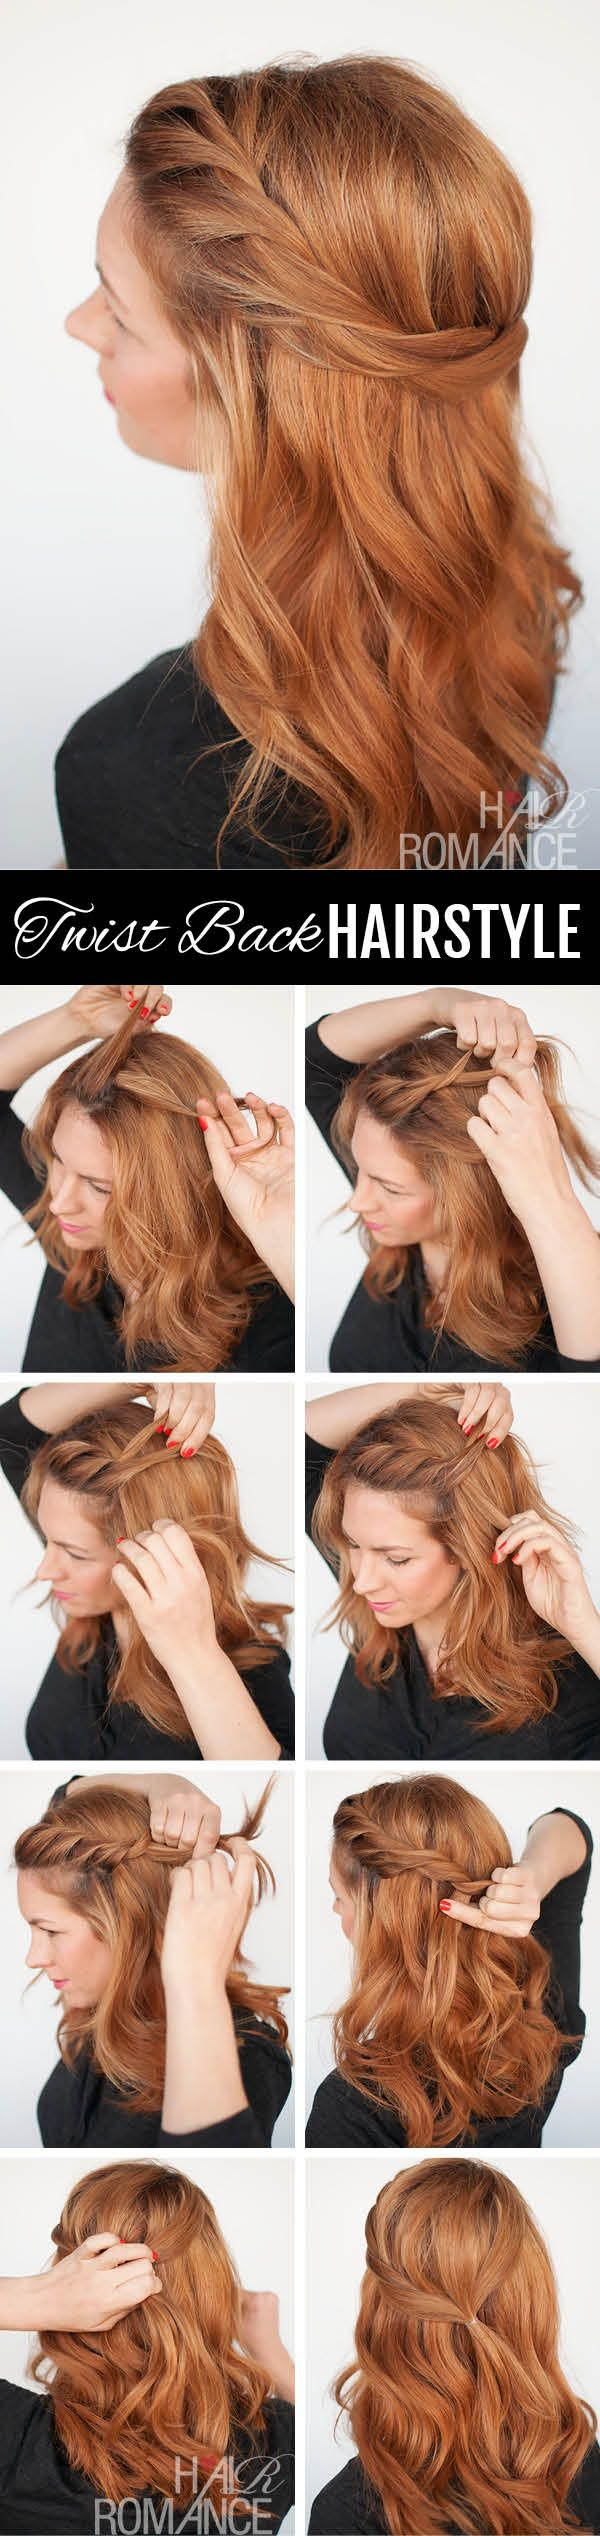 Easy half-up hairstyle....